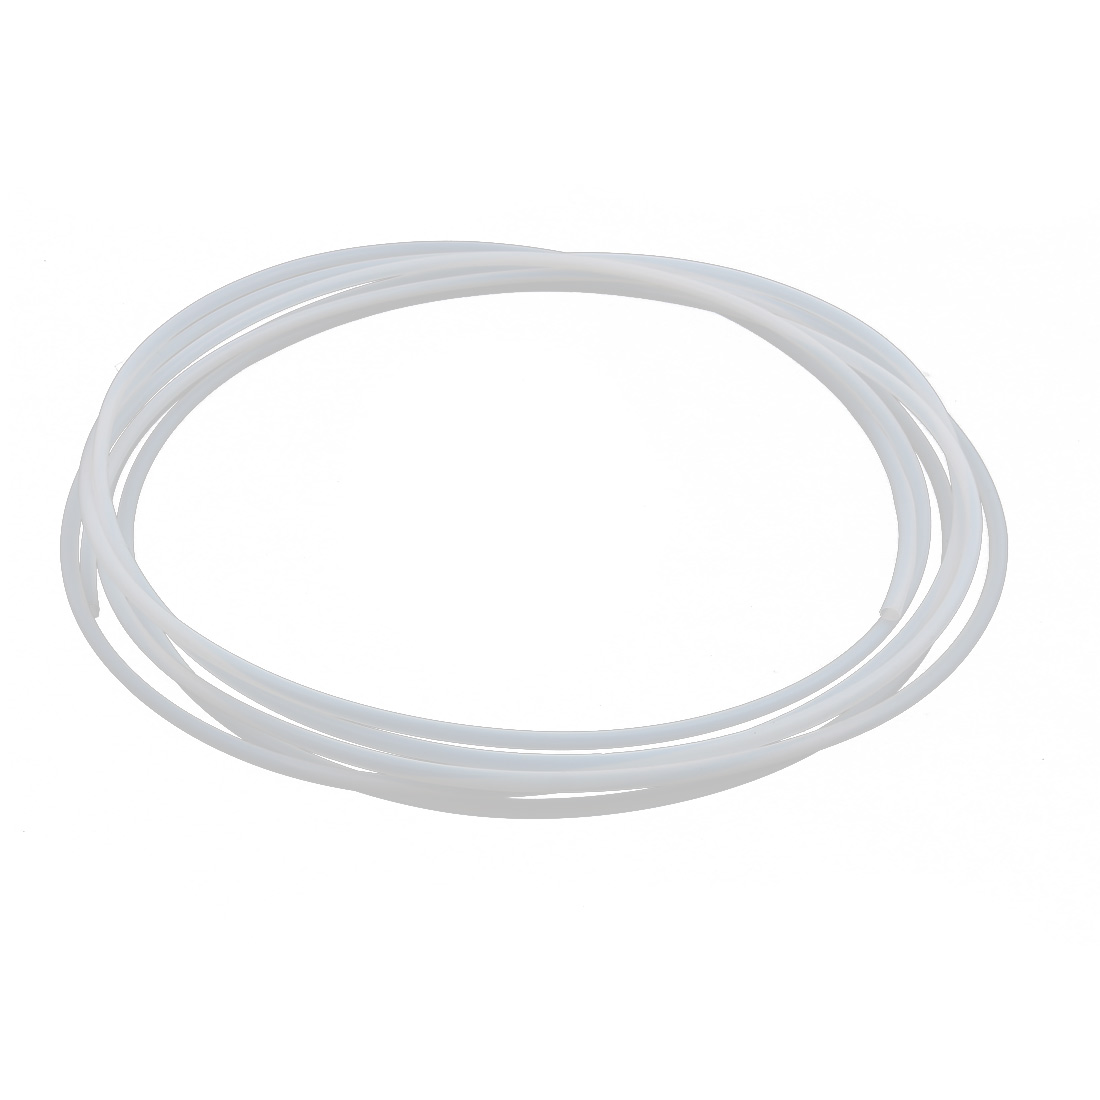 5.32mmx4.72mm PTFE Resistant High Temperature Transparent Tubing 5Meters 16.4Ft